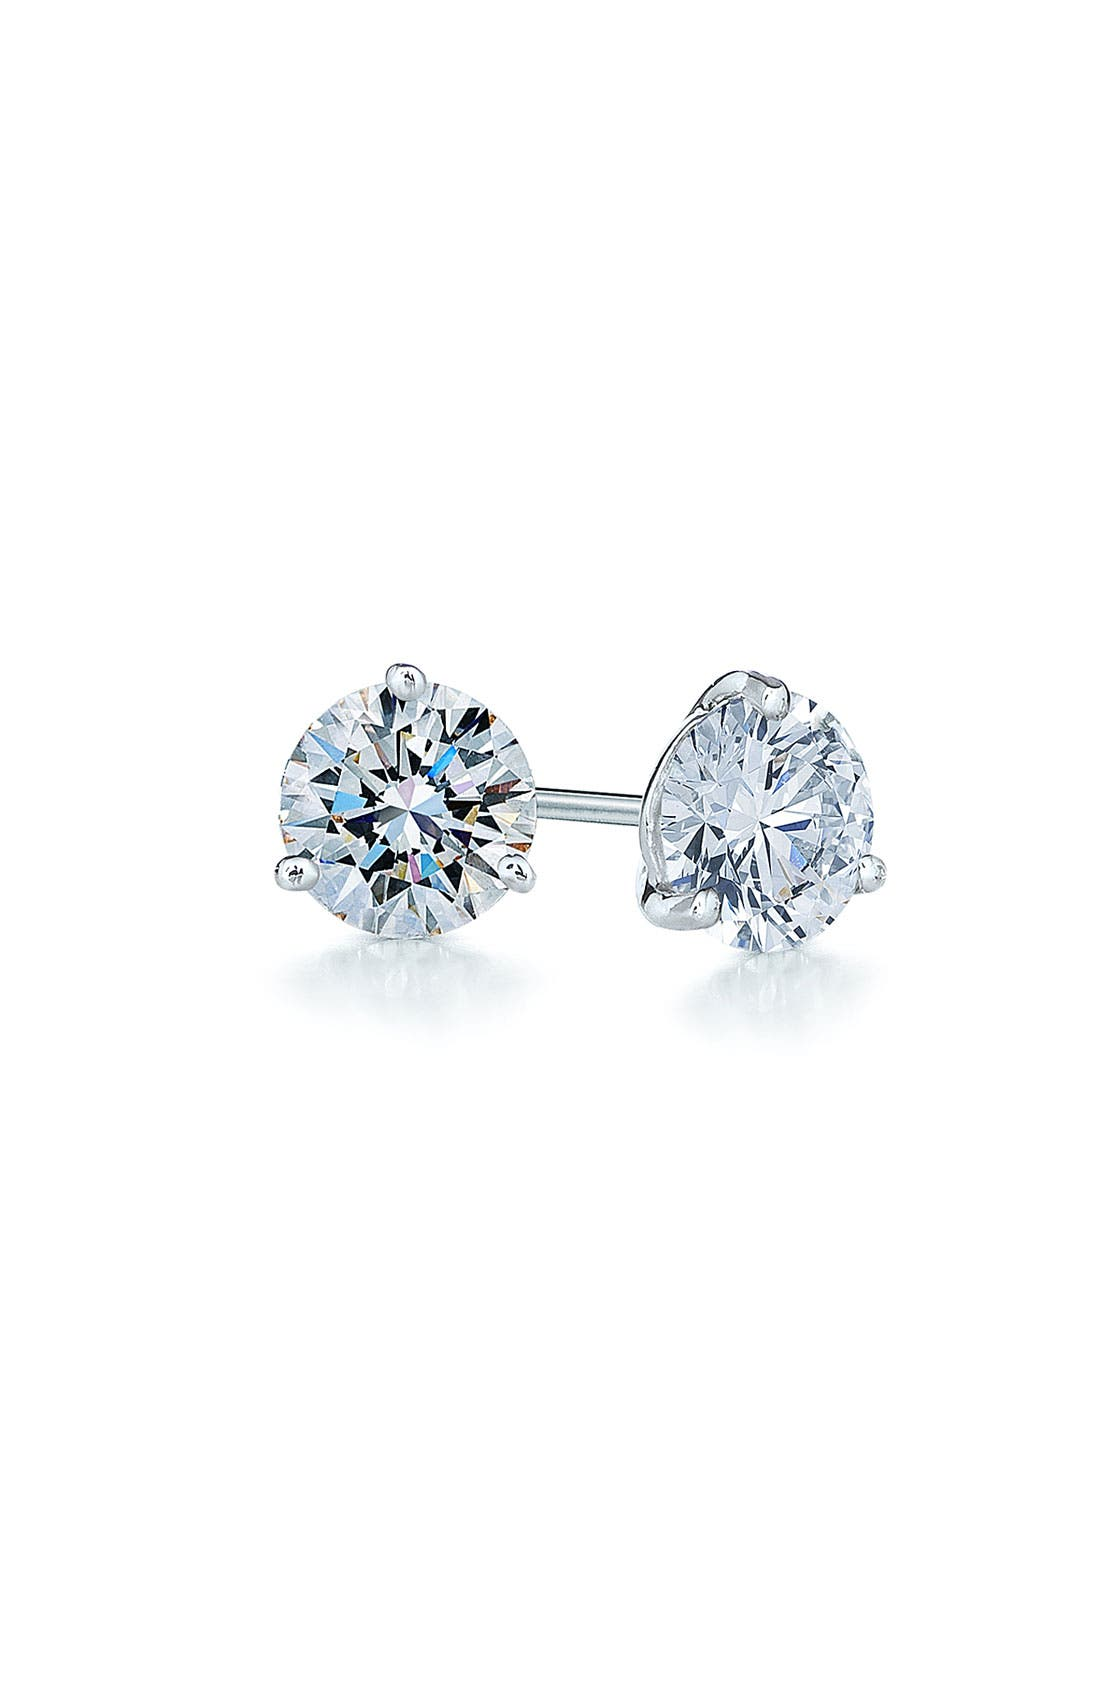 0.50ct tw Diamond & Platinum Stud Earrings,                         Main,                         color, PLATINUM